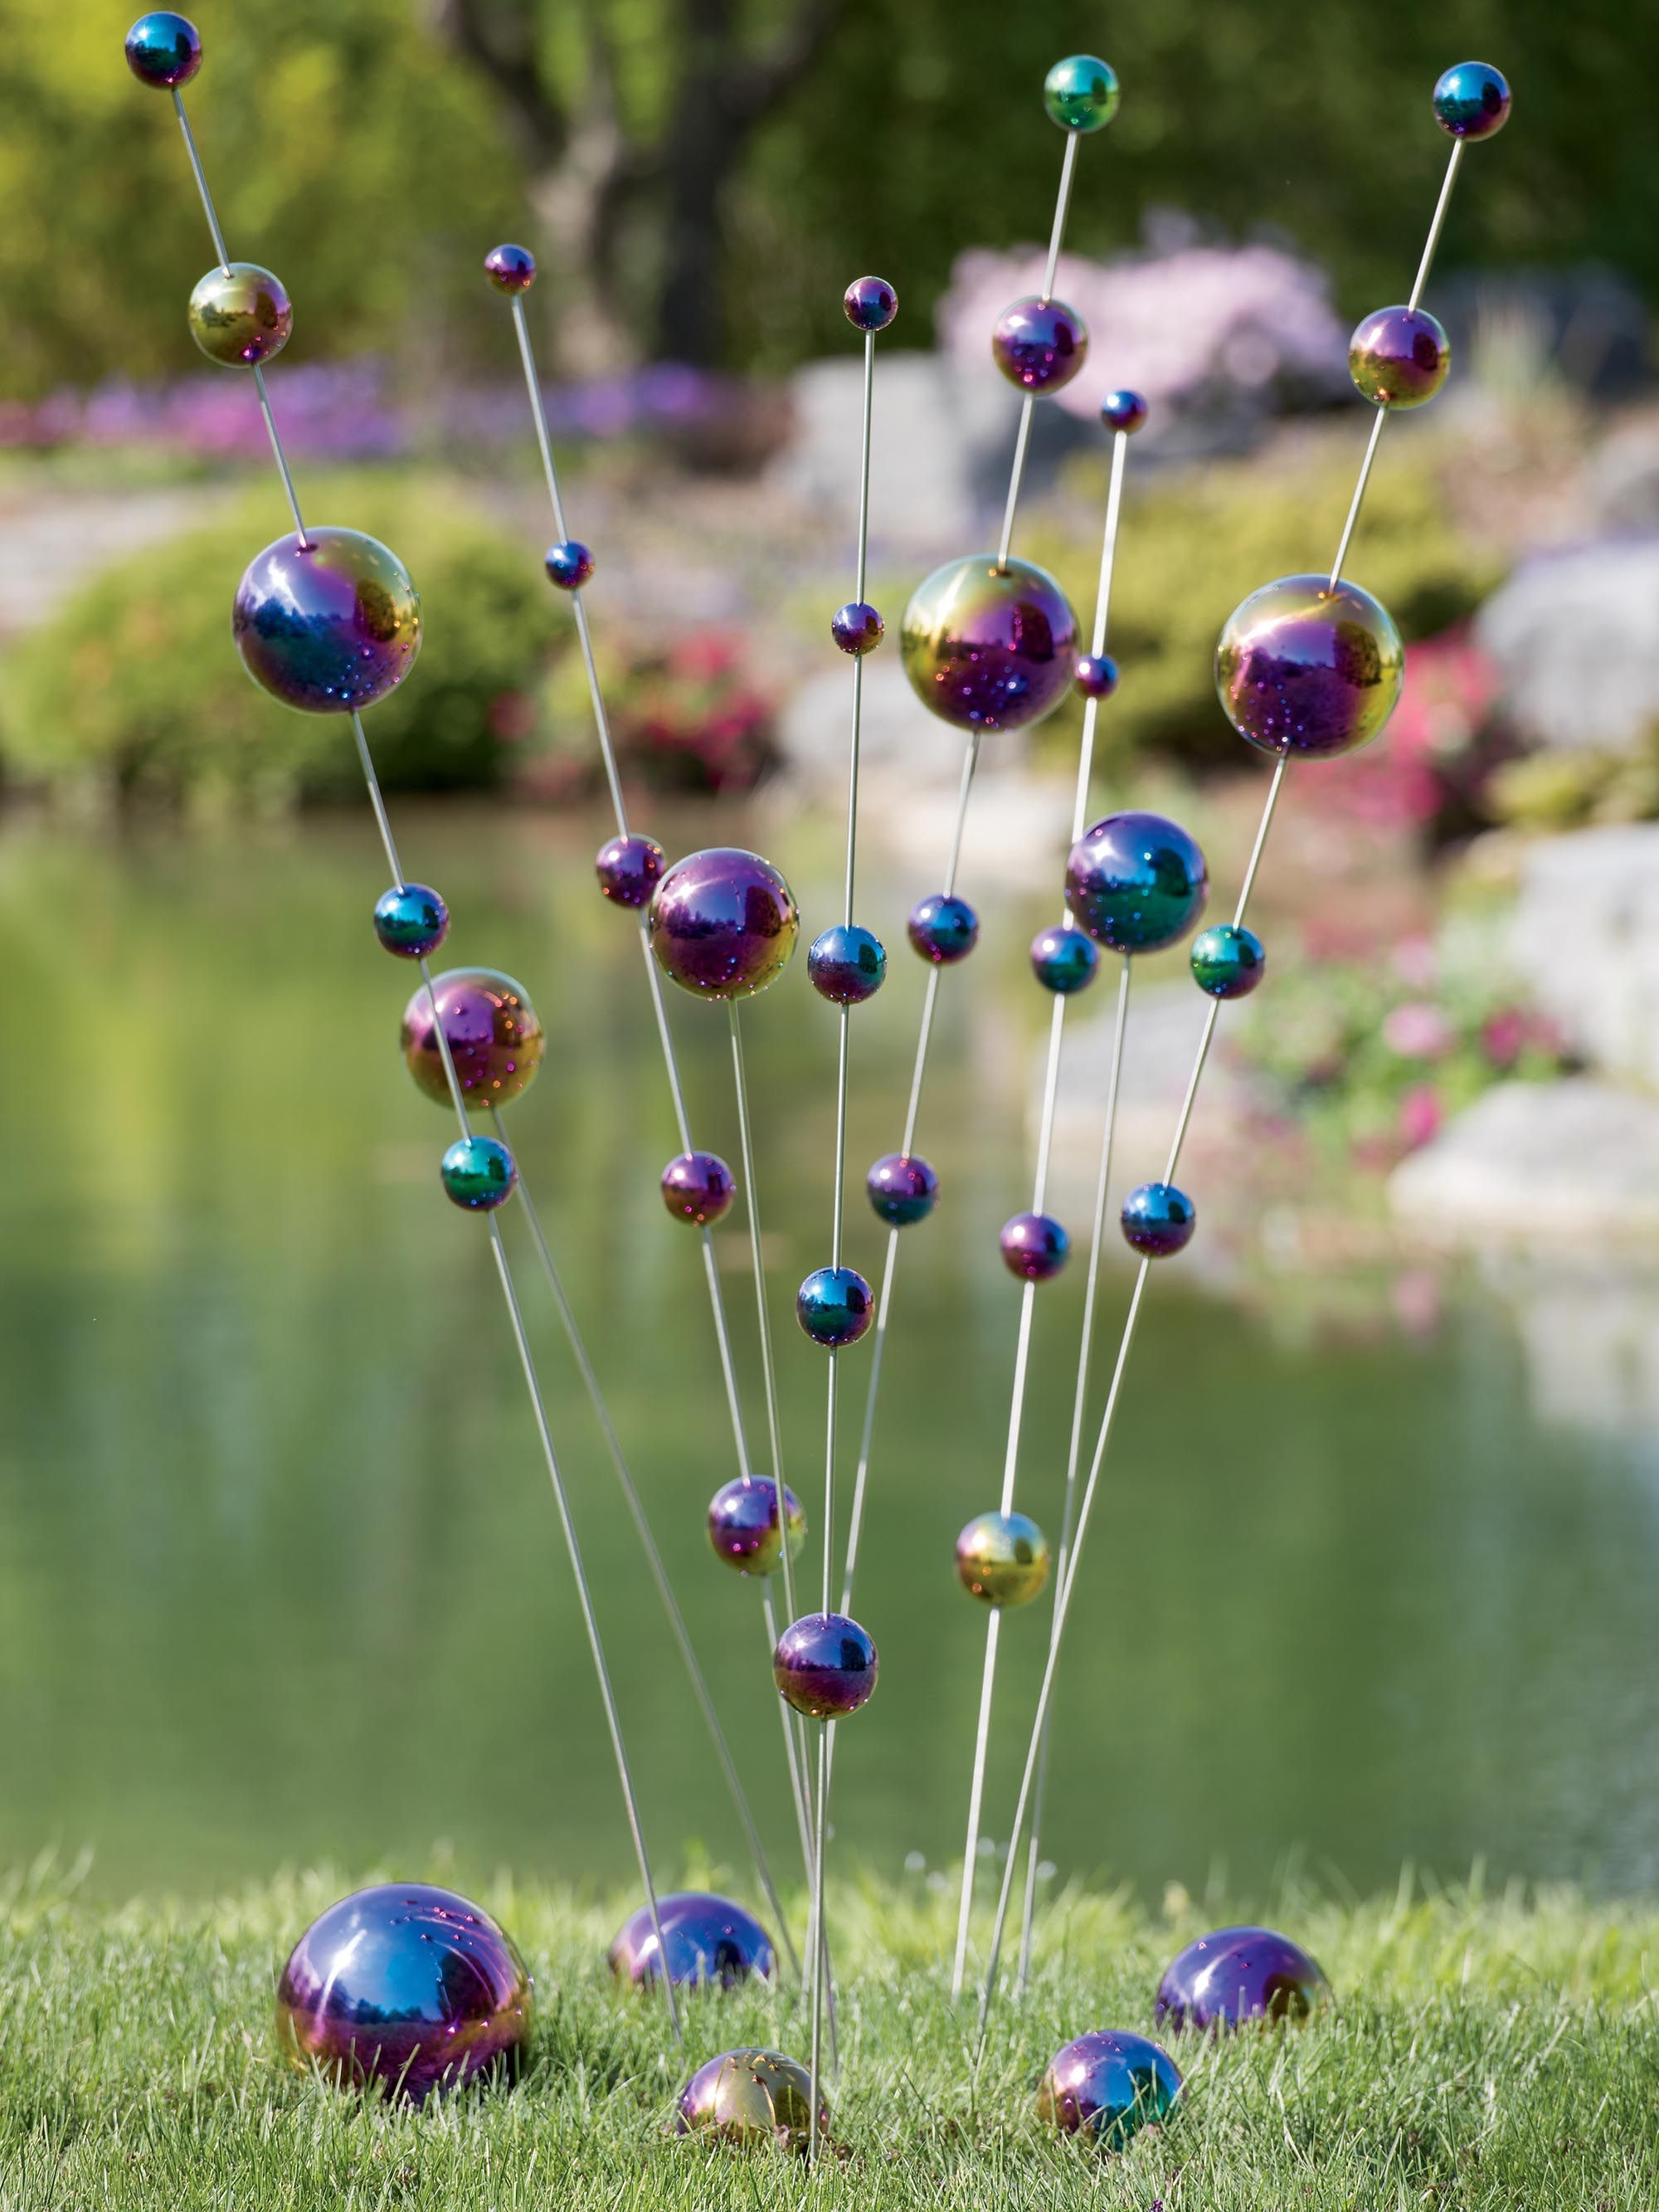 Delicieux Wind Stalks   DIY: Make With Ping Pong And Plastic Balls On Wire Stakes And  Spray With Looking Glass Paint